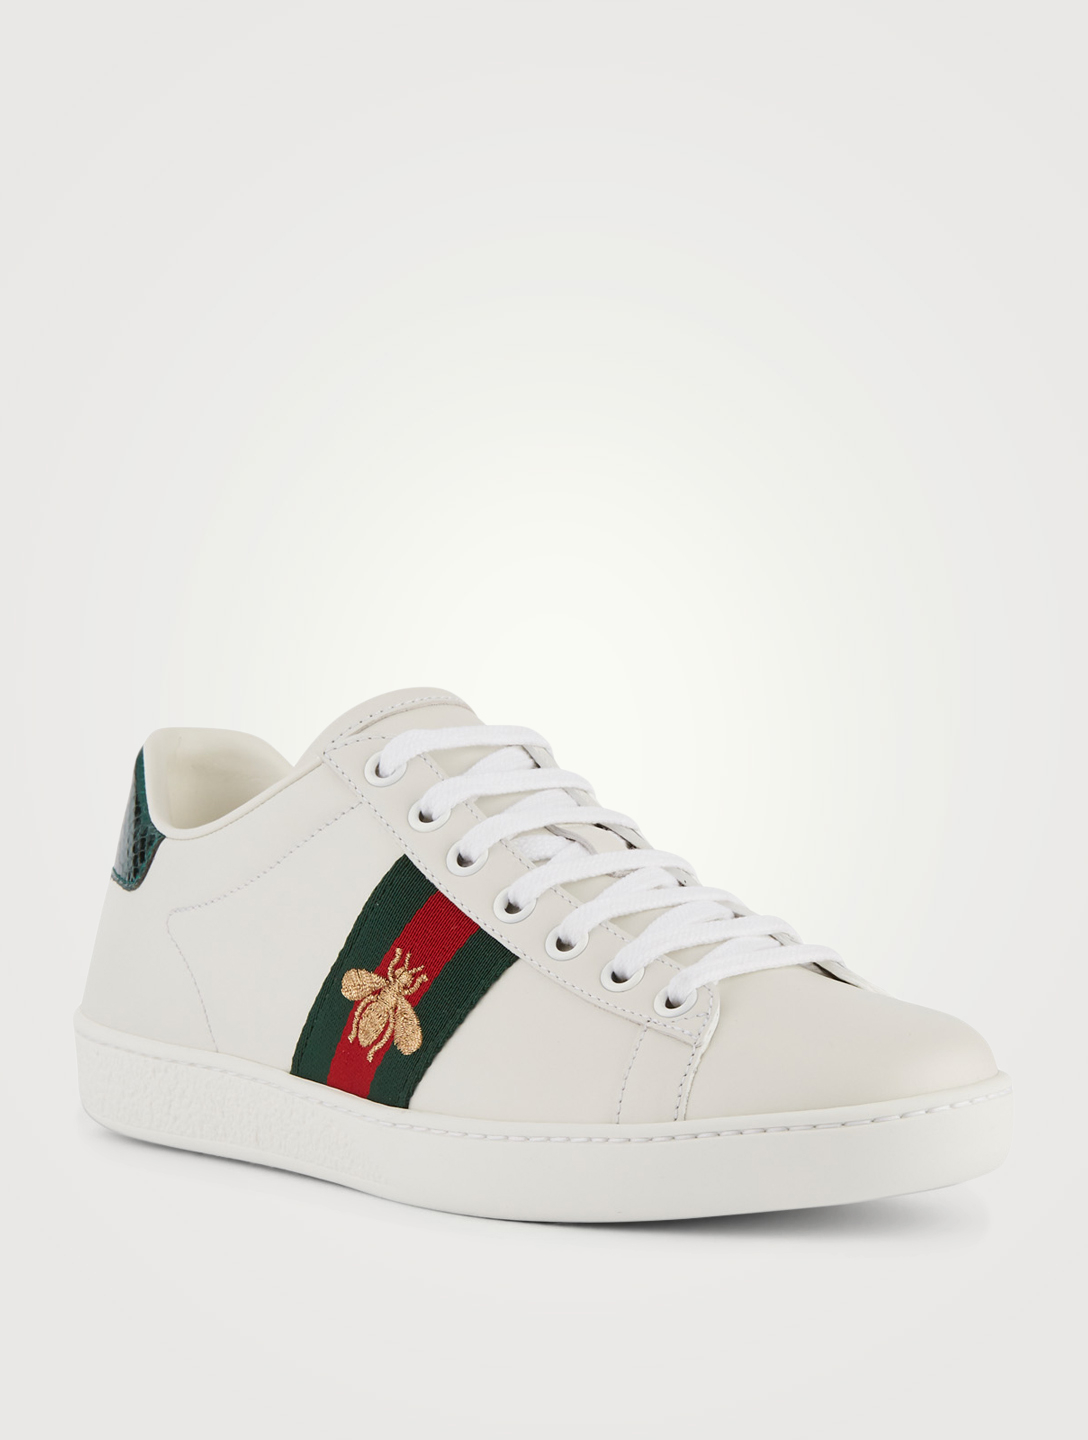 GUCCI New Ace Embroidered Leather Sneakers Designers White ... bf46b27a9d8d